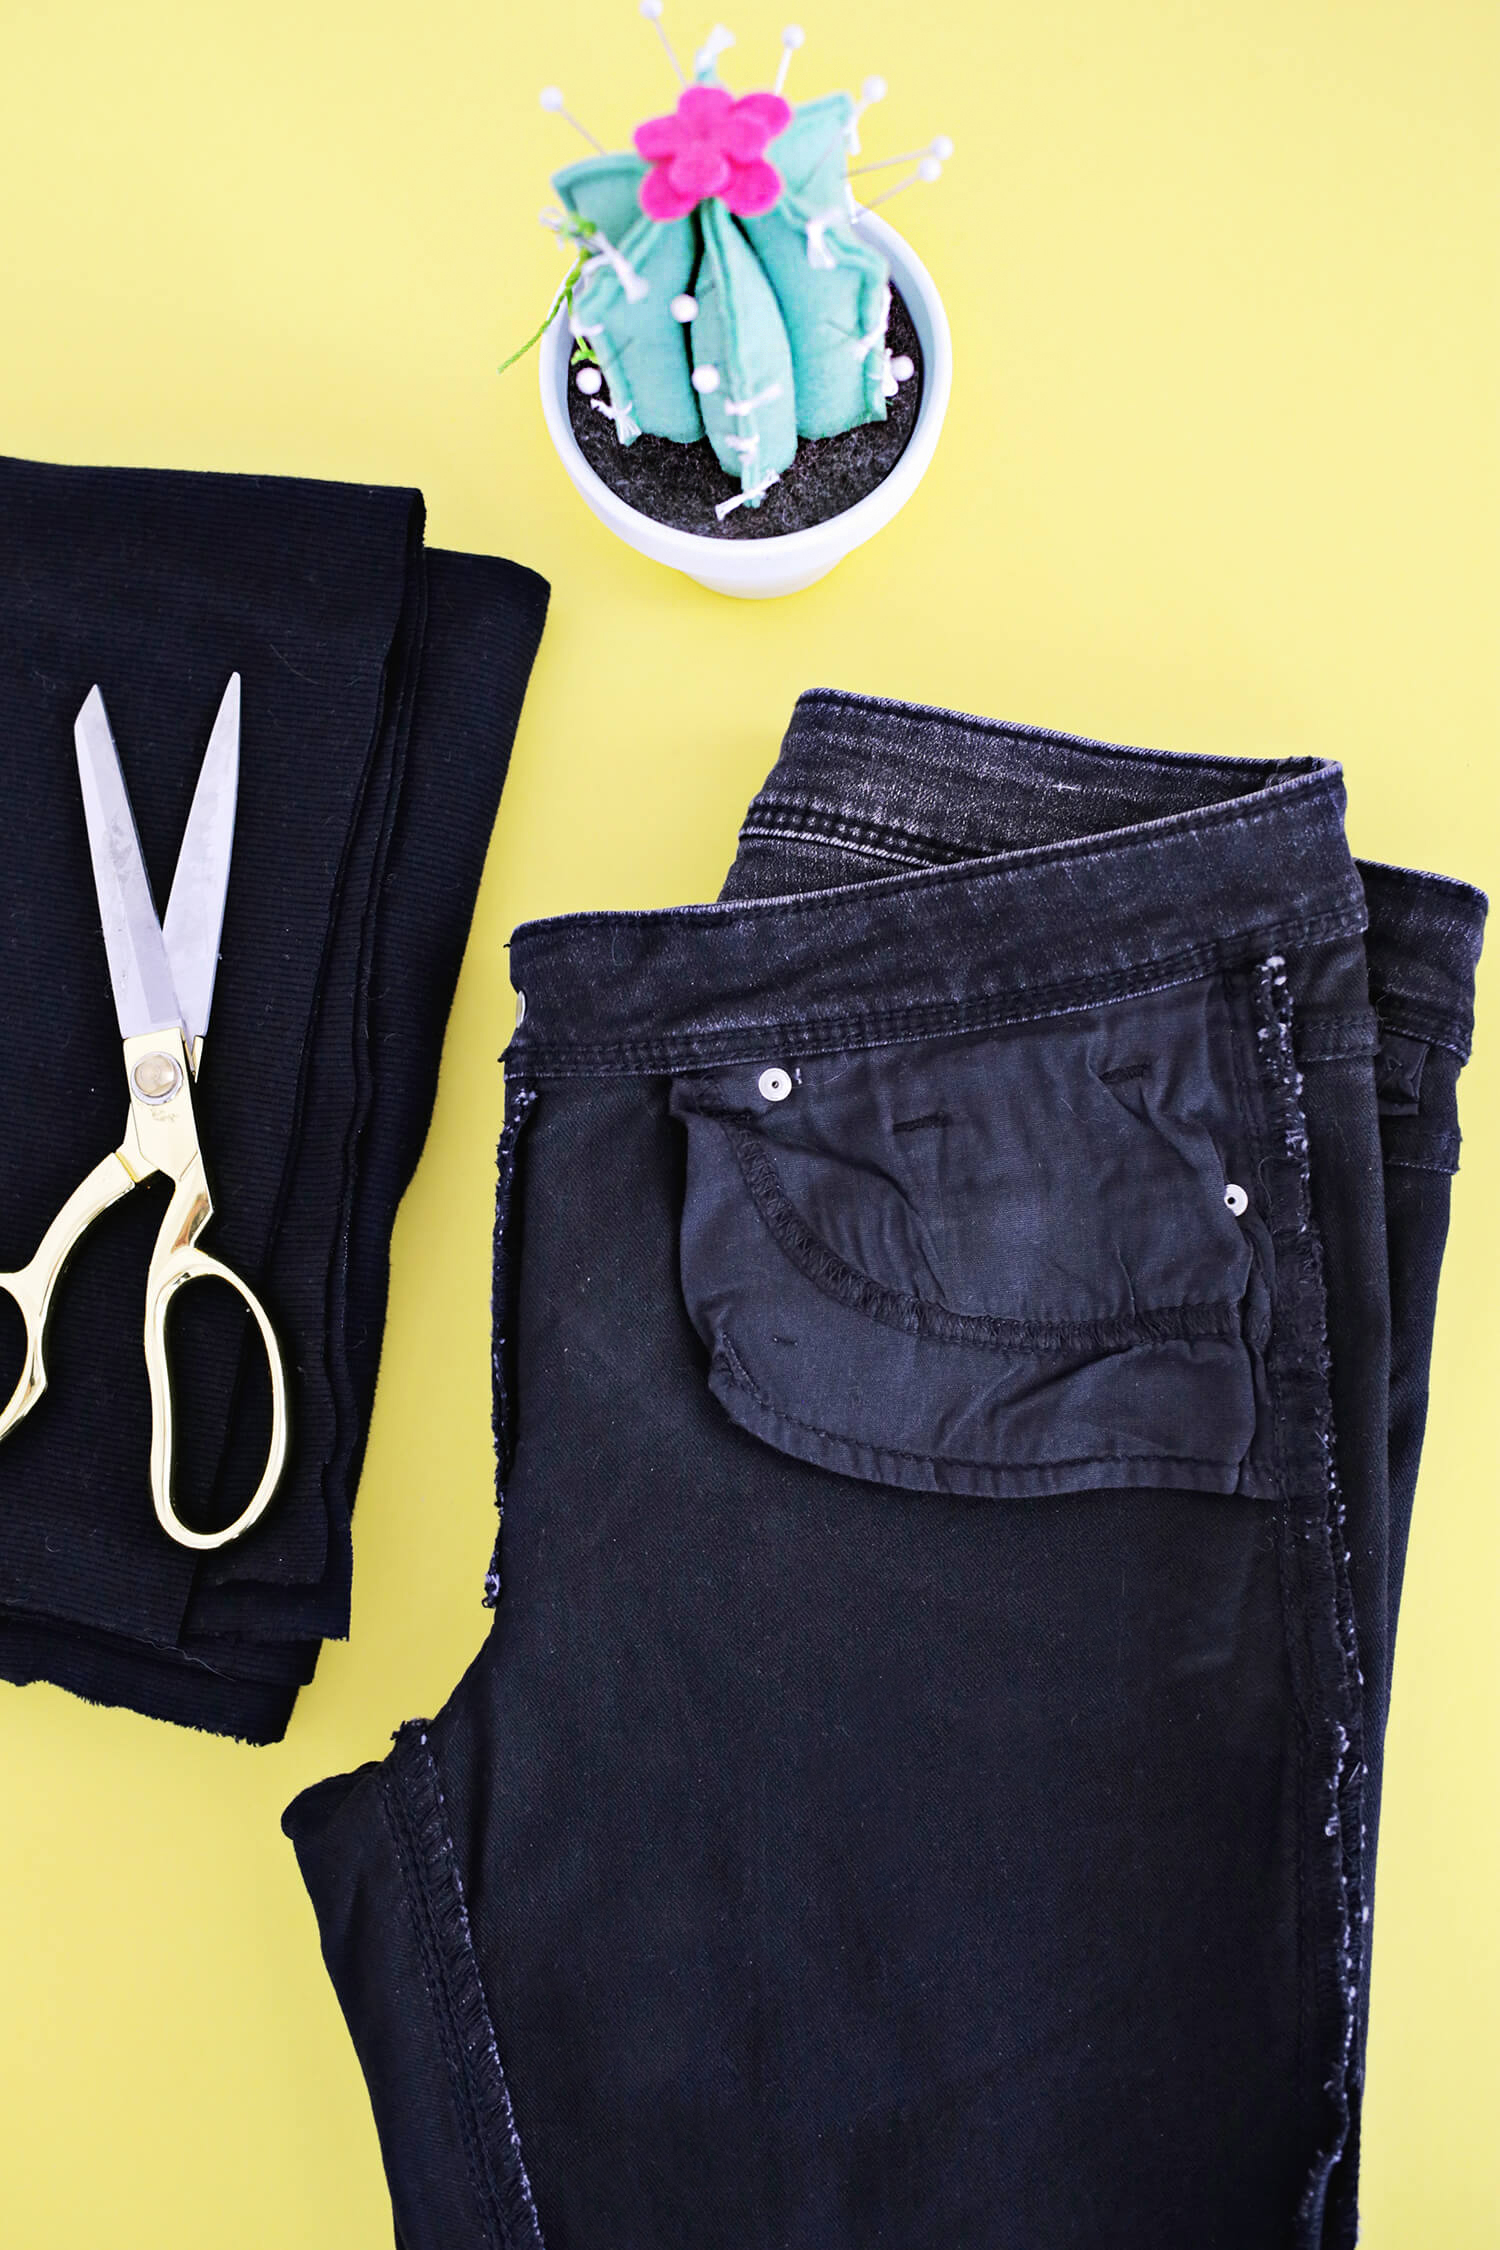 Turn Your Pants Into Maternity Jeans With This Simple DIY (click through for tutorial)